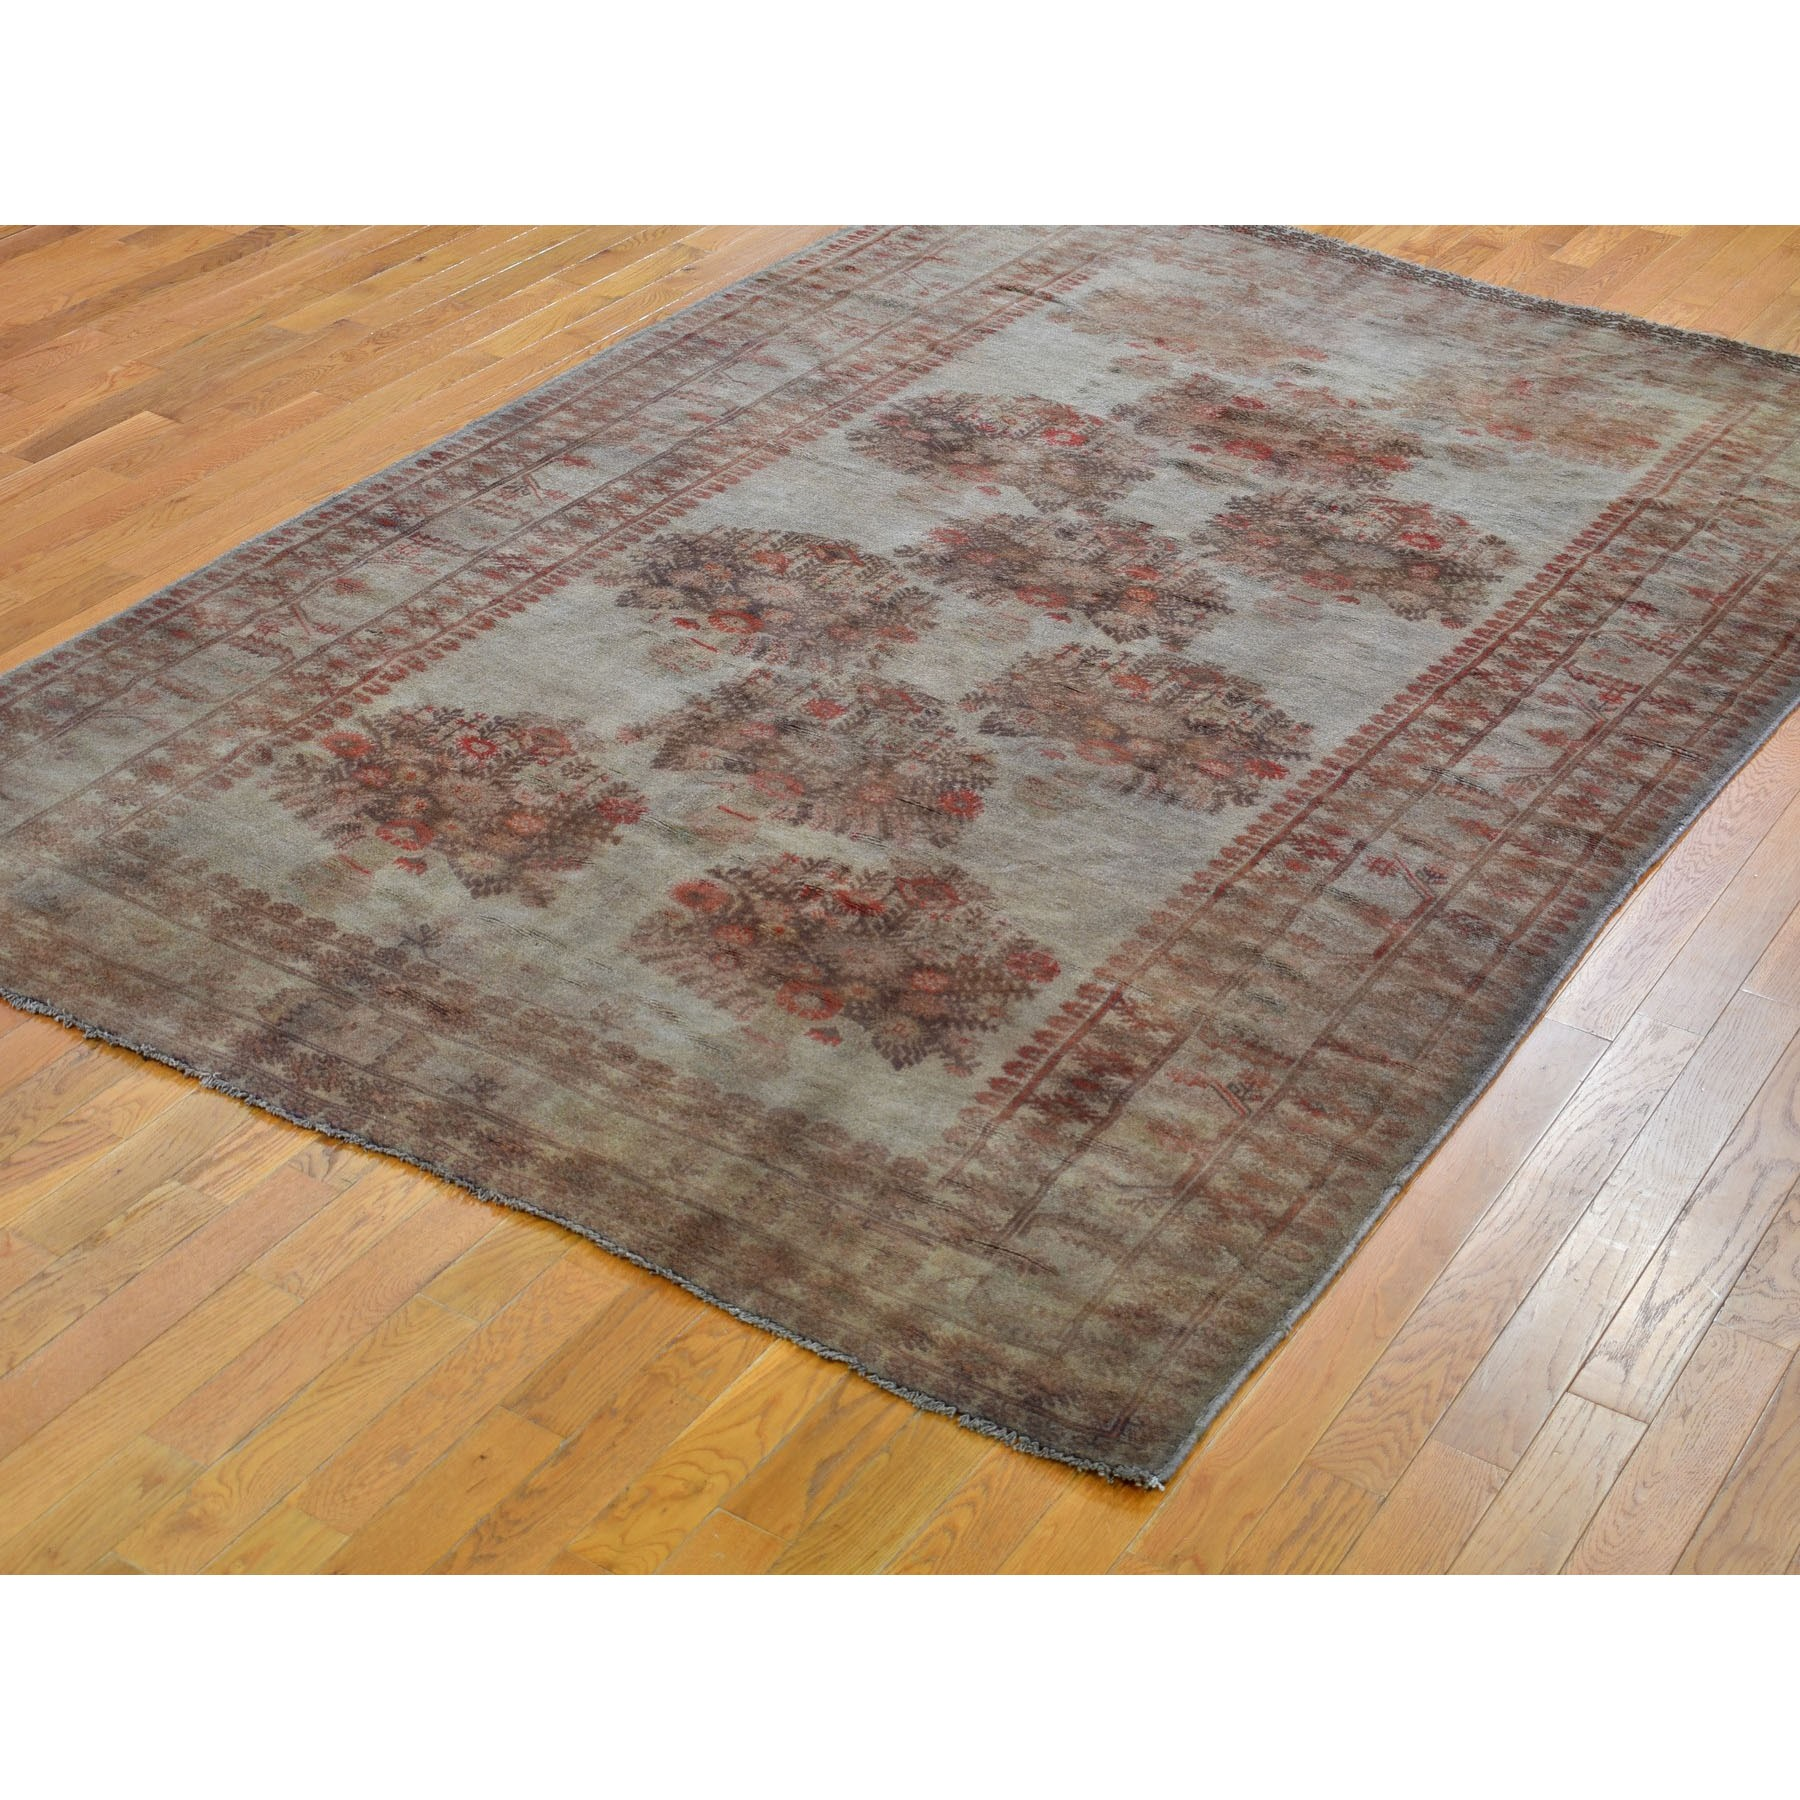 6-9 x9- Washed Out Afghan Baluch With pop Of Color Pure Wool Hand Knotted Oriental Rug